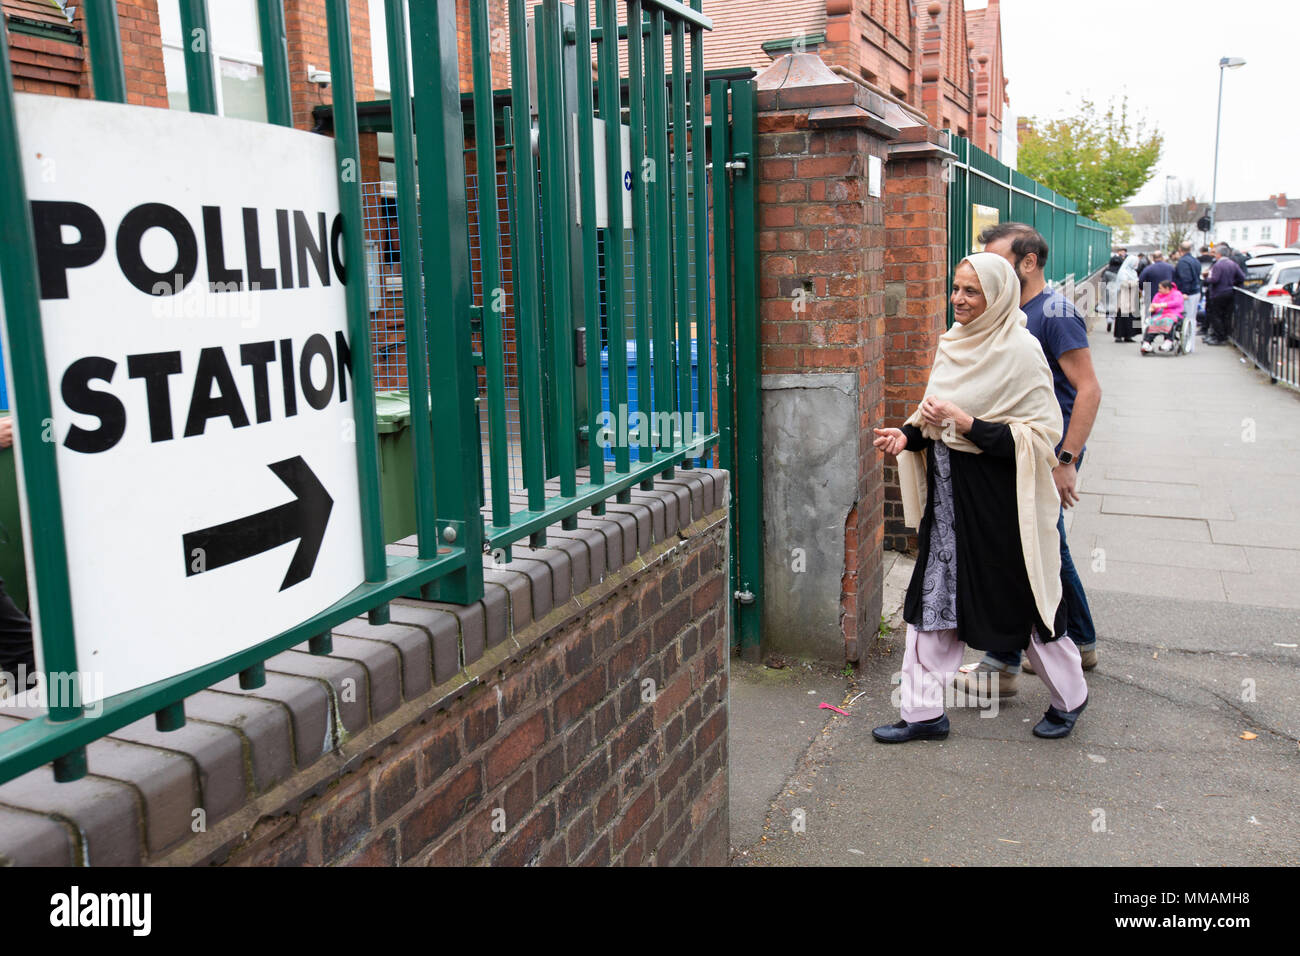 Muslim voters arriving at a polling station in Small Heath, Birmingham, for the local elections in May 2018. - Stock Image